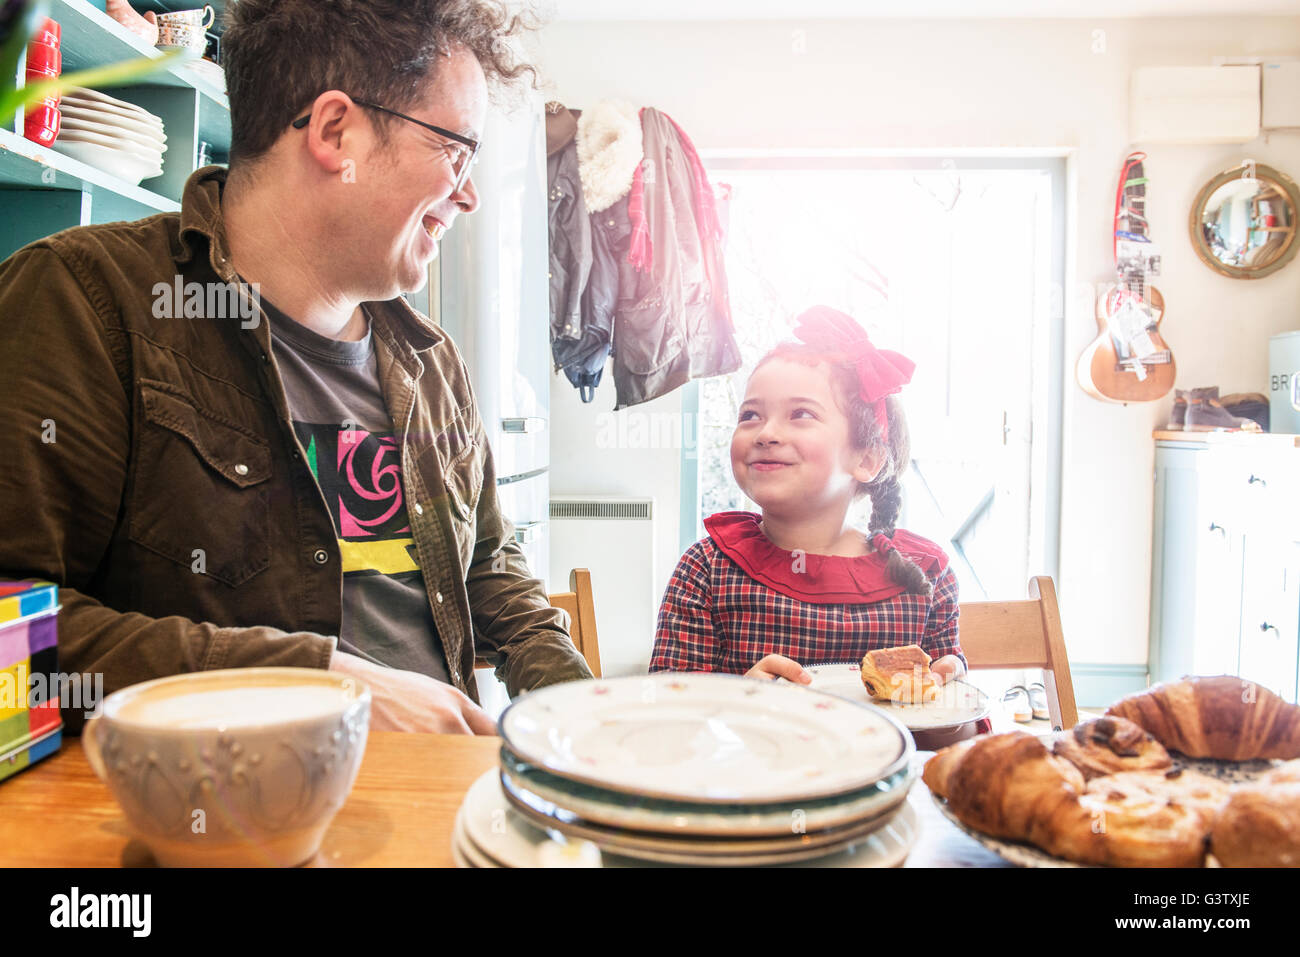 A father sits in his kitchen chatting to his 6 year old daughter. - Stock Image